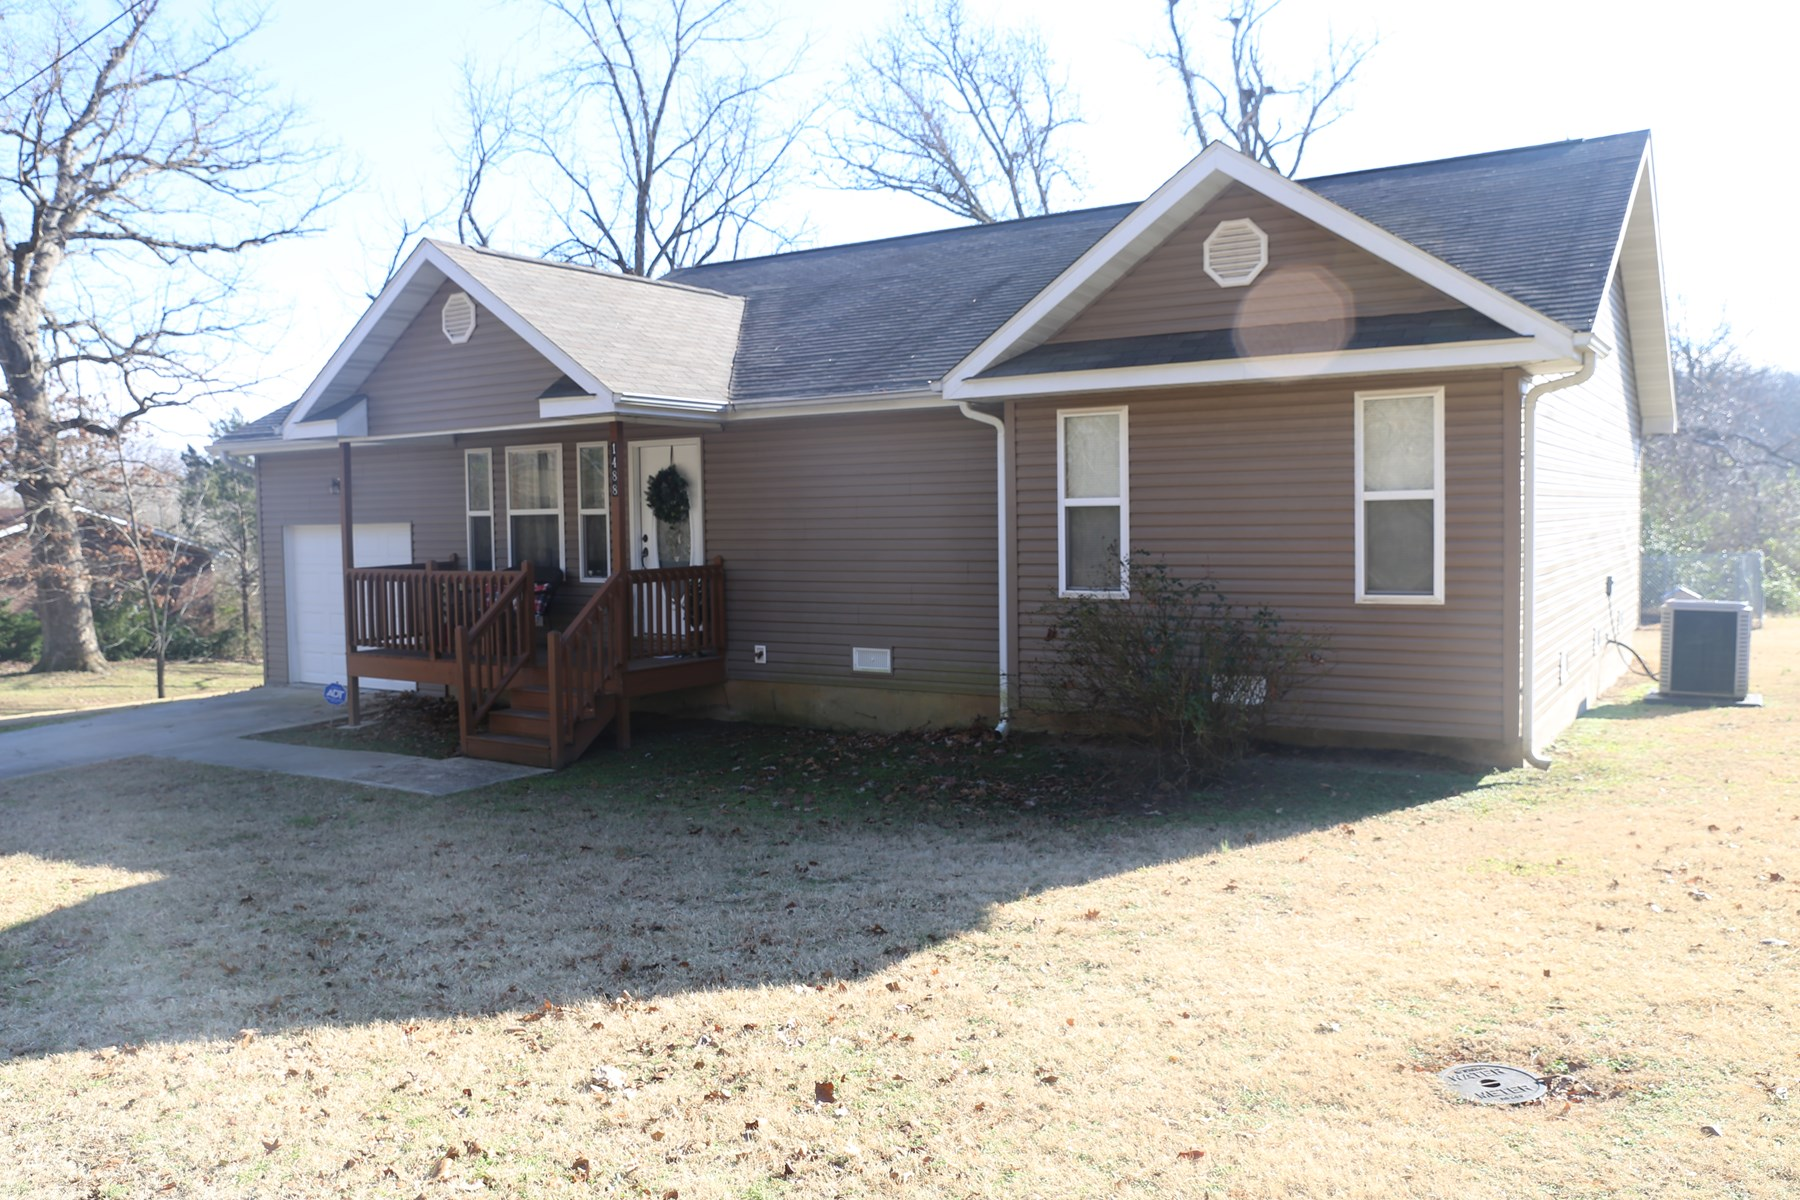 Home for sale in West Plains, Missouri- Howell County 3/2